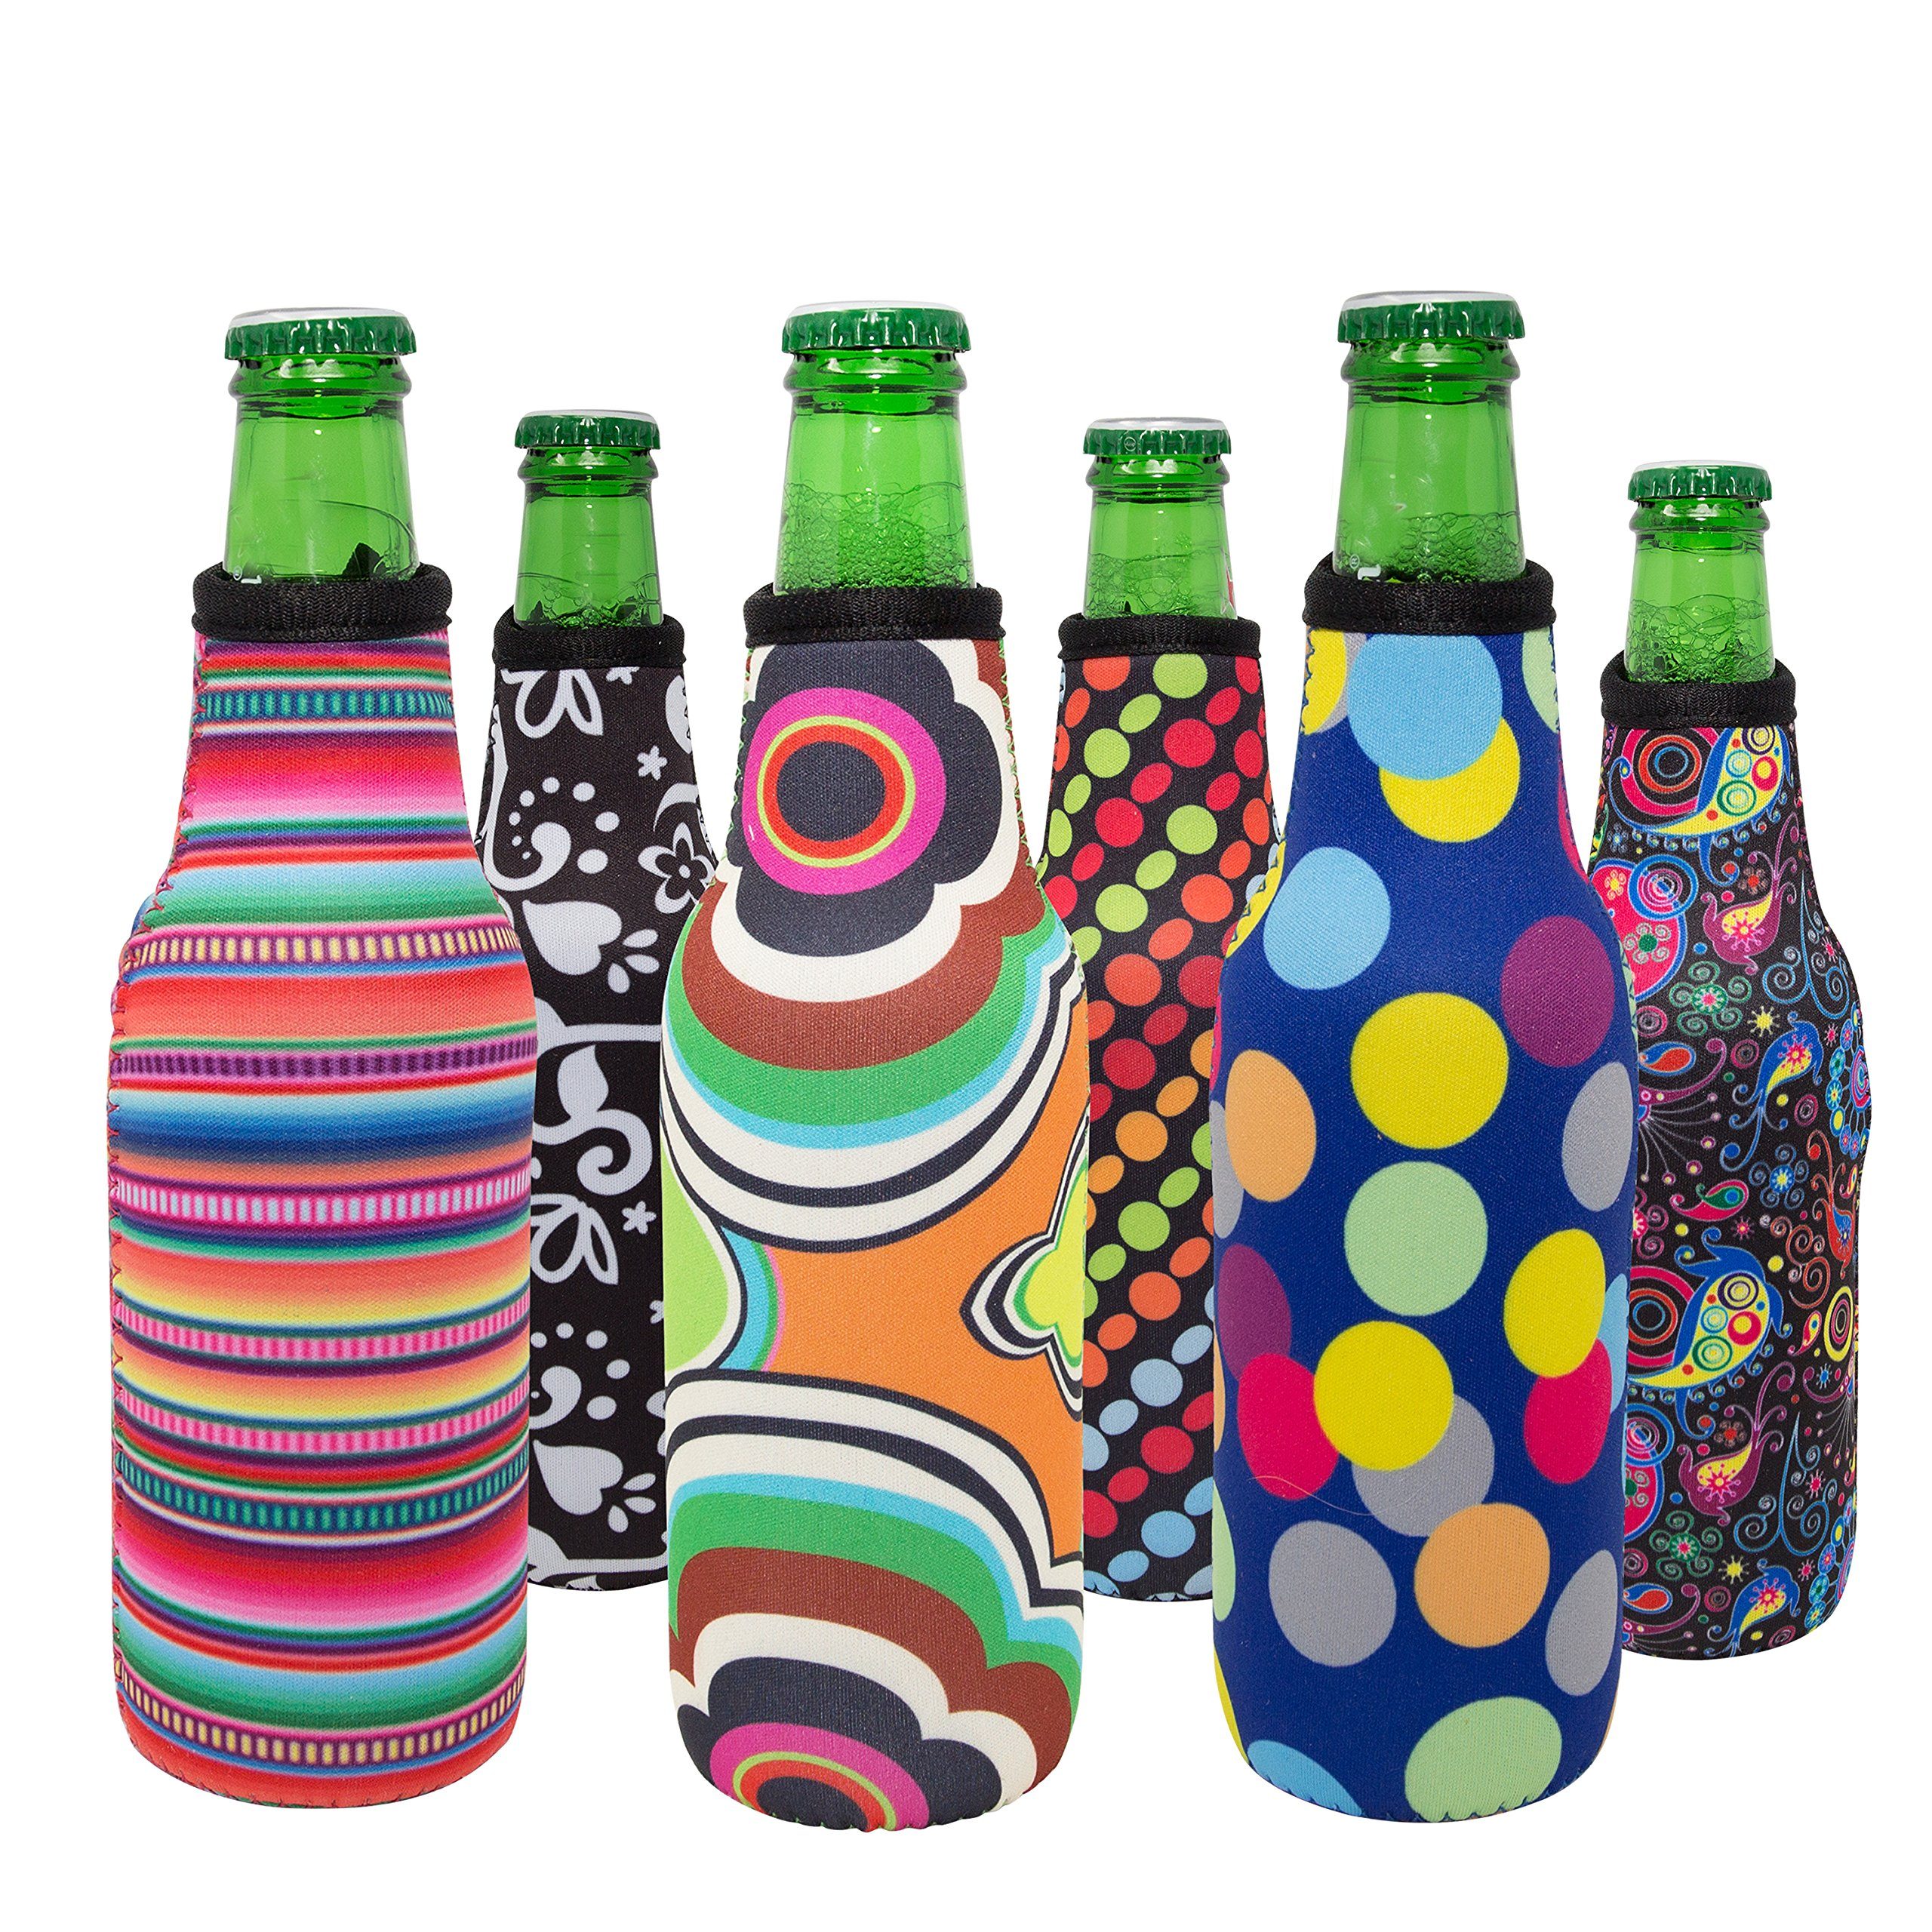 Beer Bottle Cooler Sleeve Set of 6 Fun Trendy Design 3mm Neoprene Zipper Sleeve Fully Stitched Insulated Beer Bottle Covers